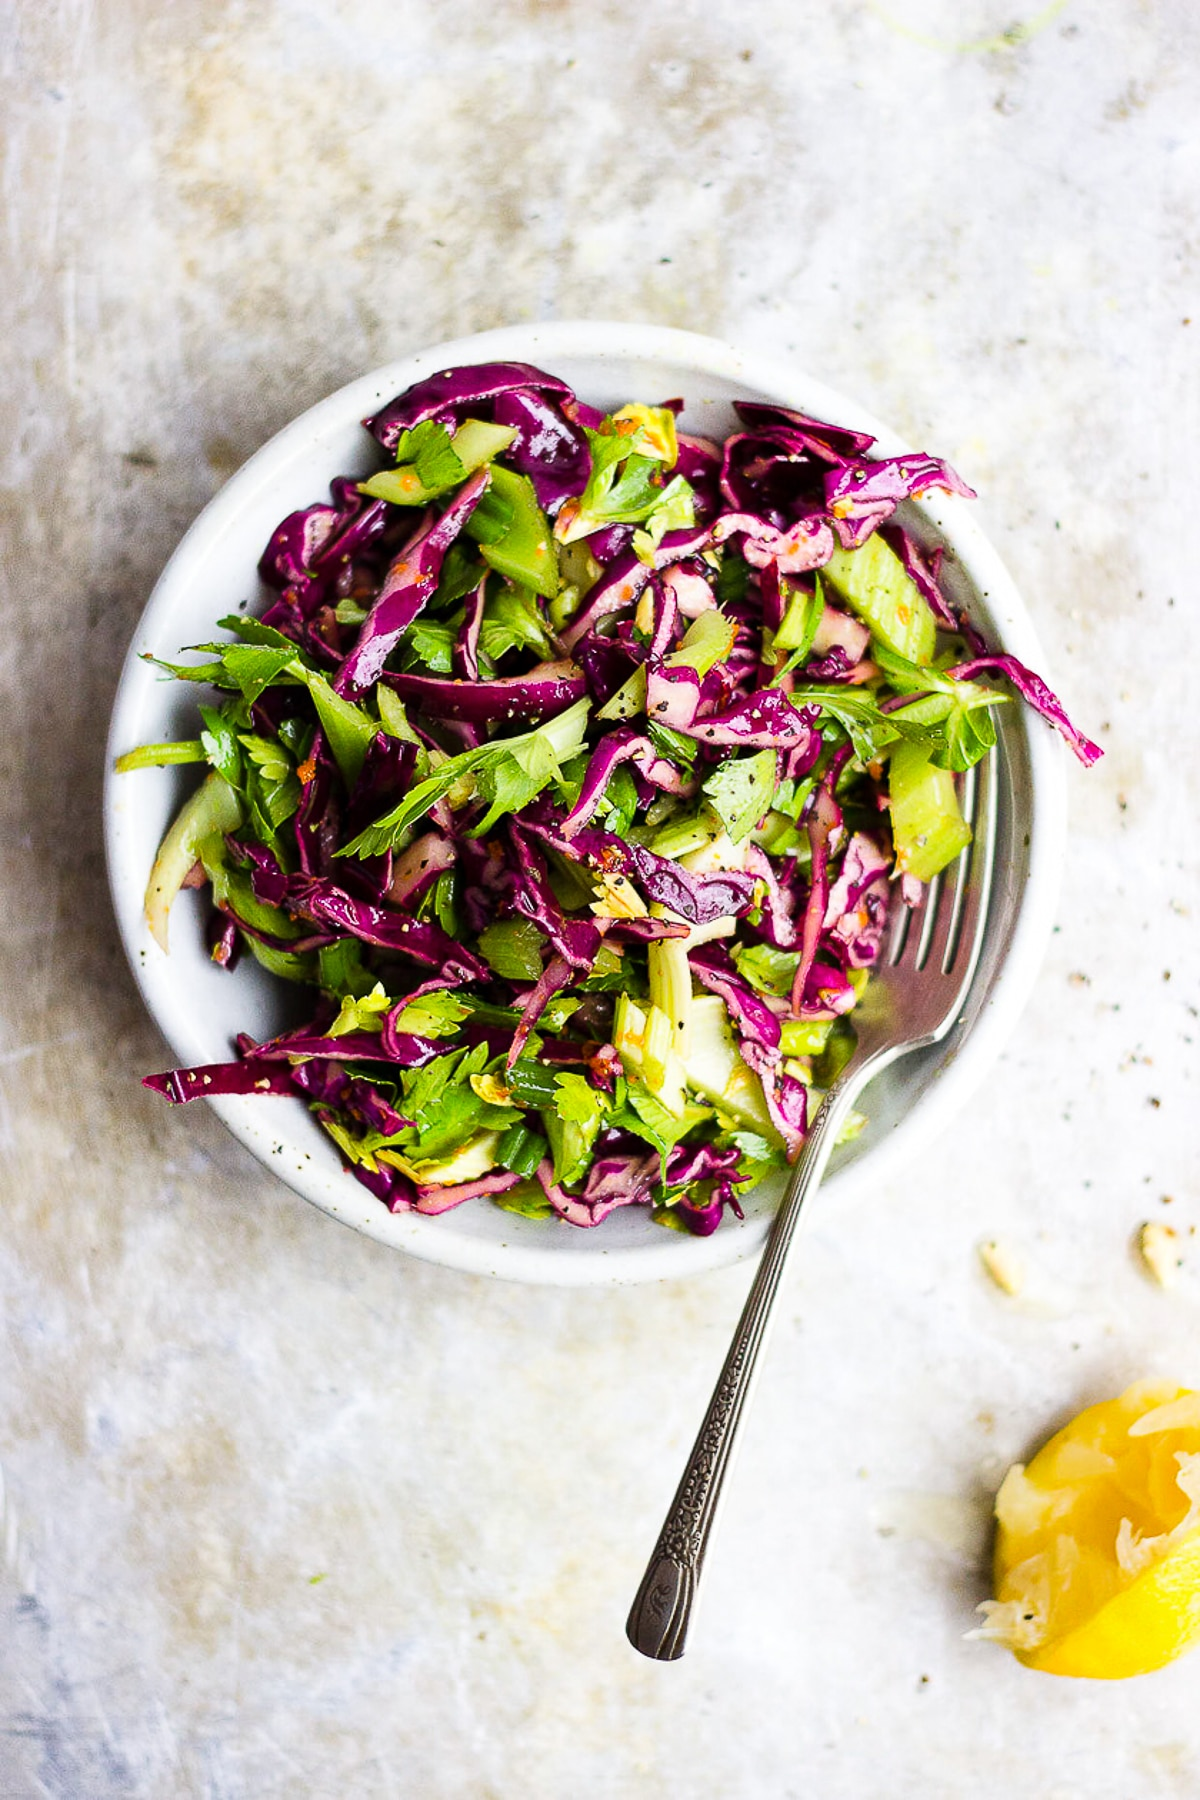 CABBAGE CELERY SALAD WITH TURMERIC VINAIGRETTE